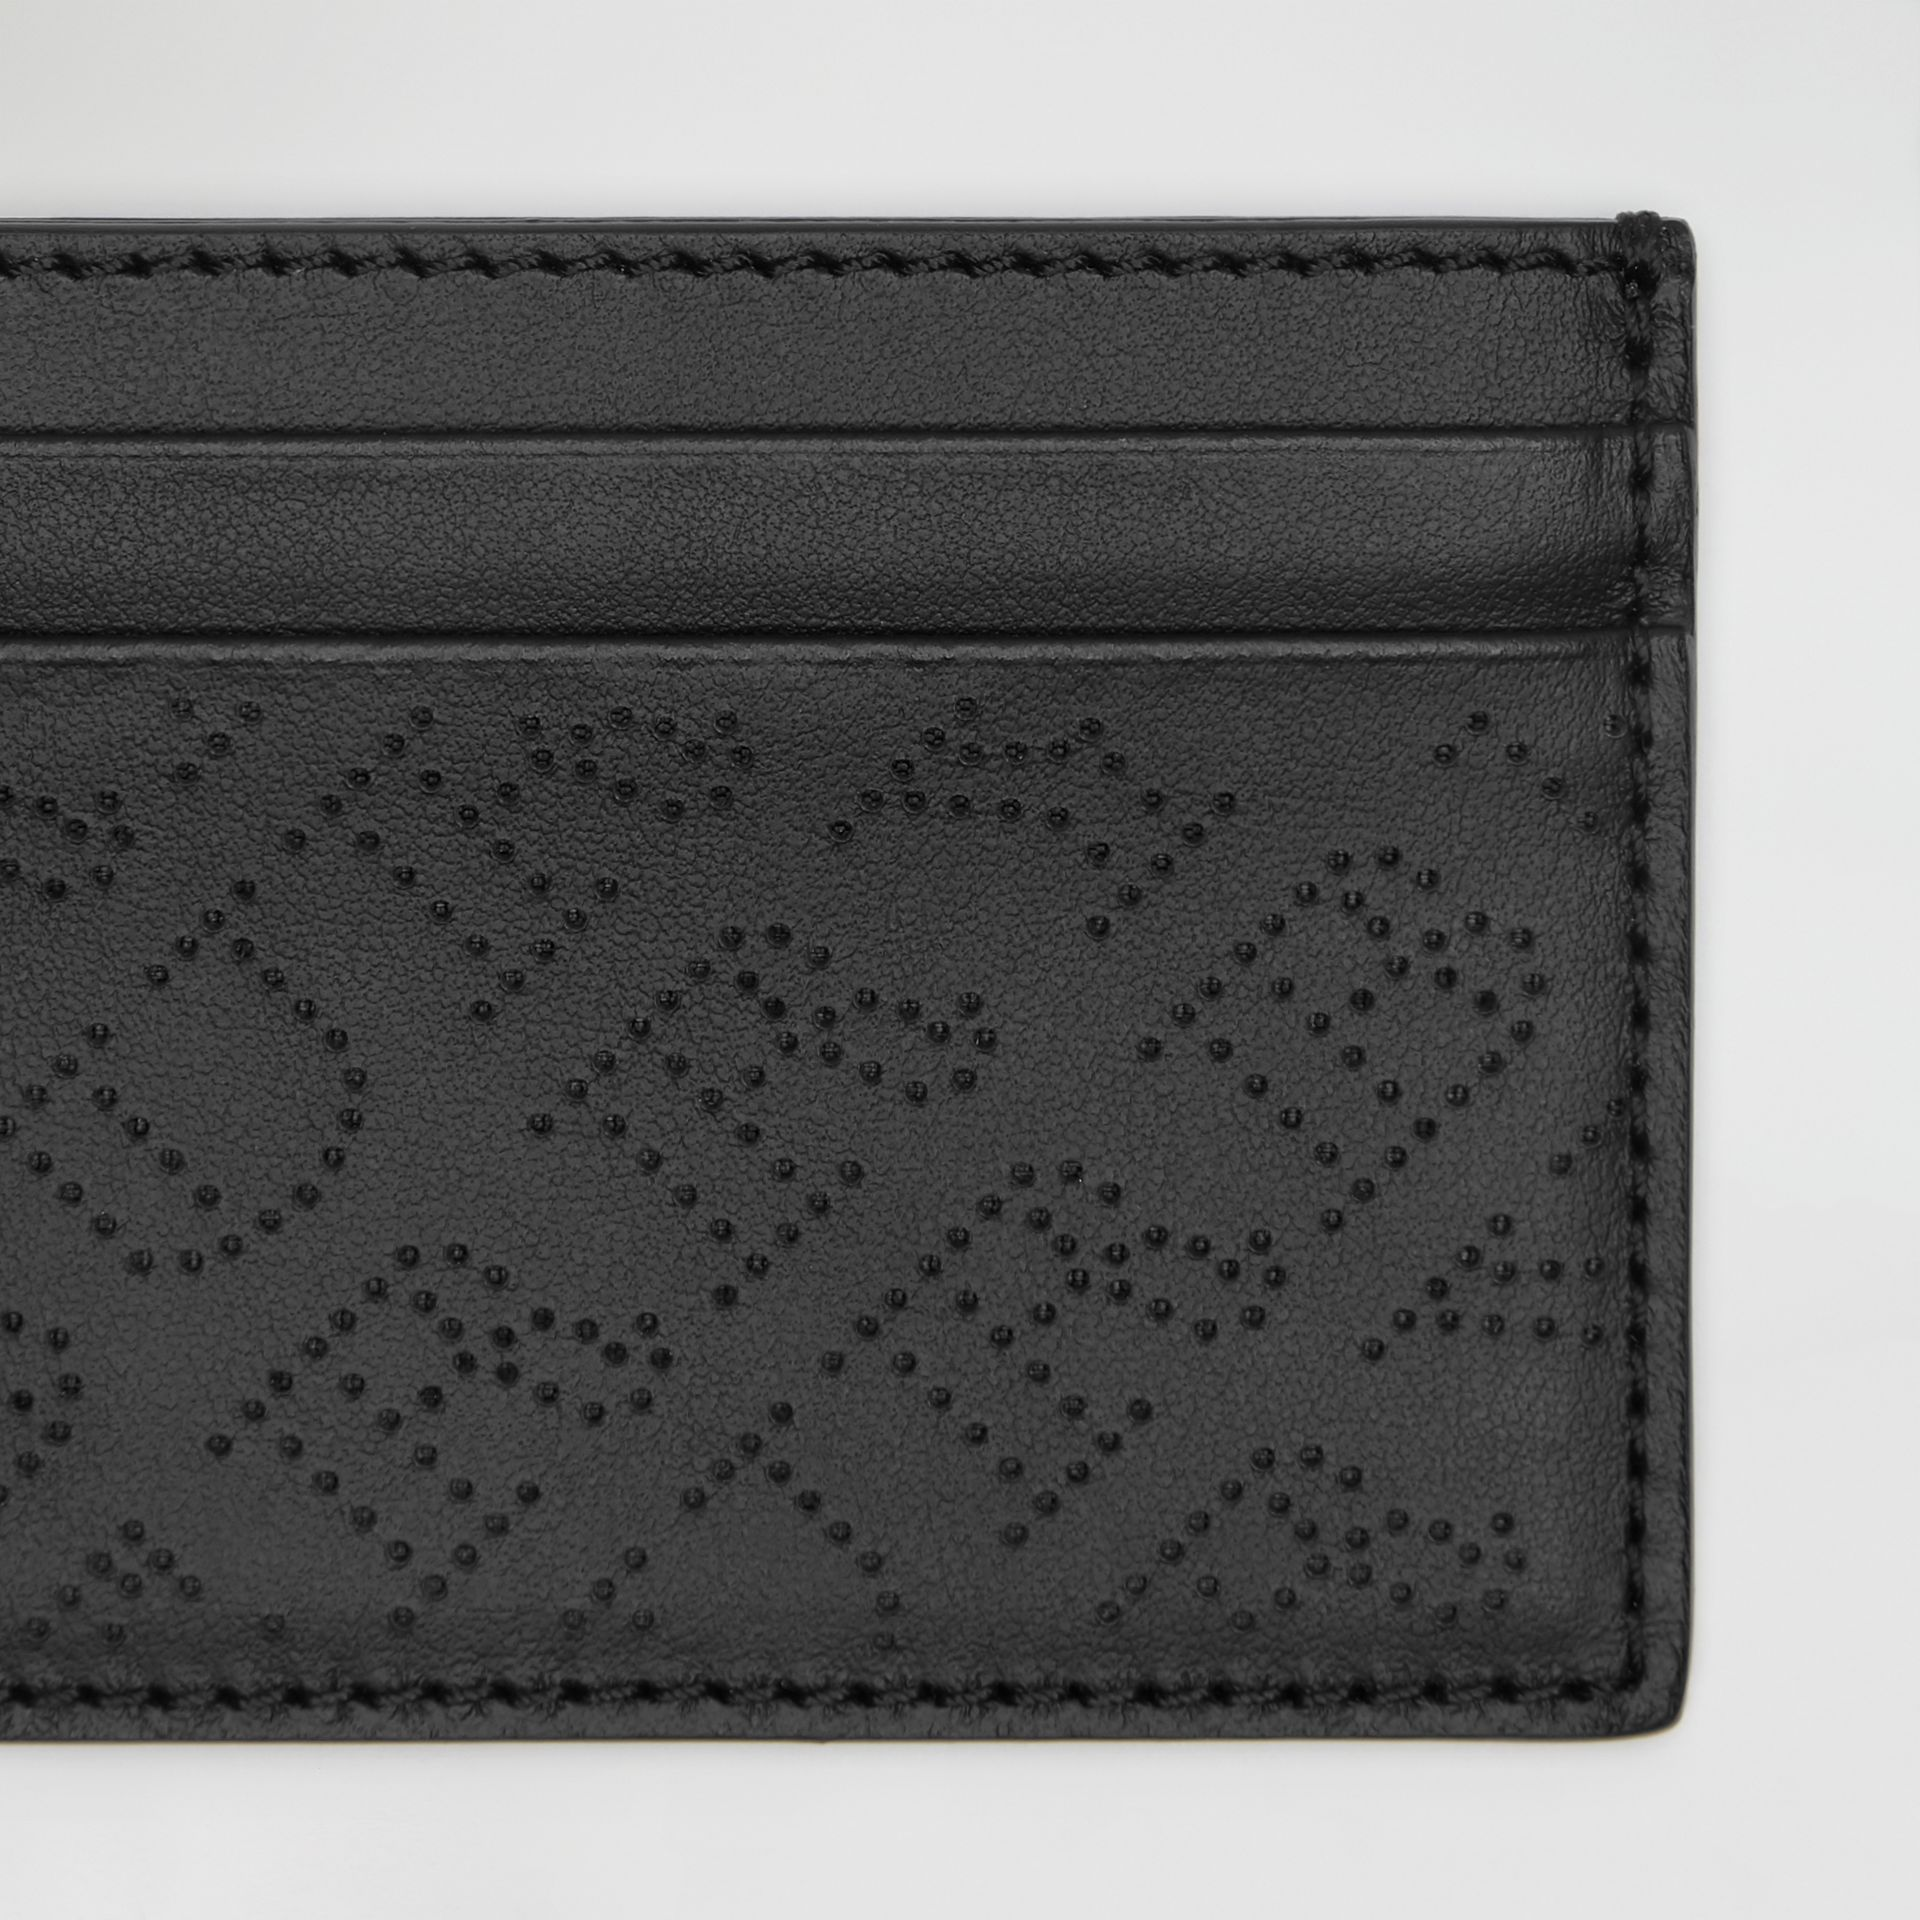 Perforated Logo Leather Card Case in Black - Women | Burberry - gallery image 1